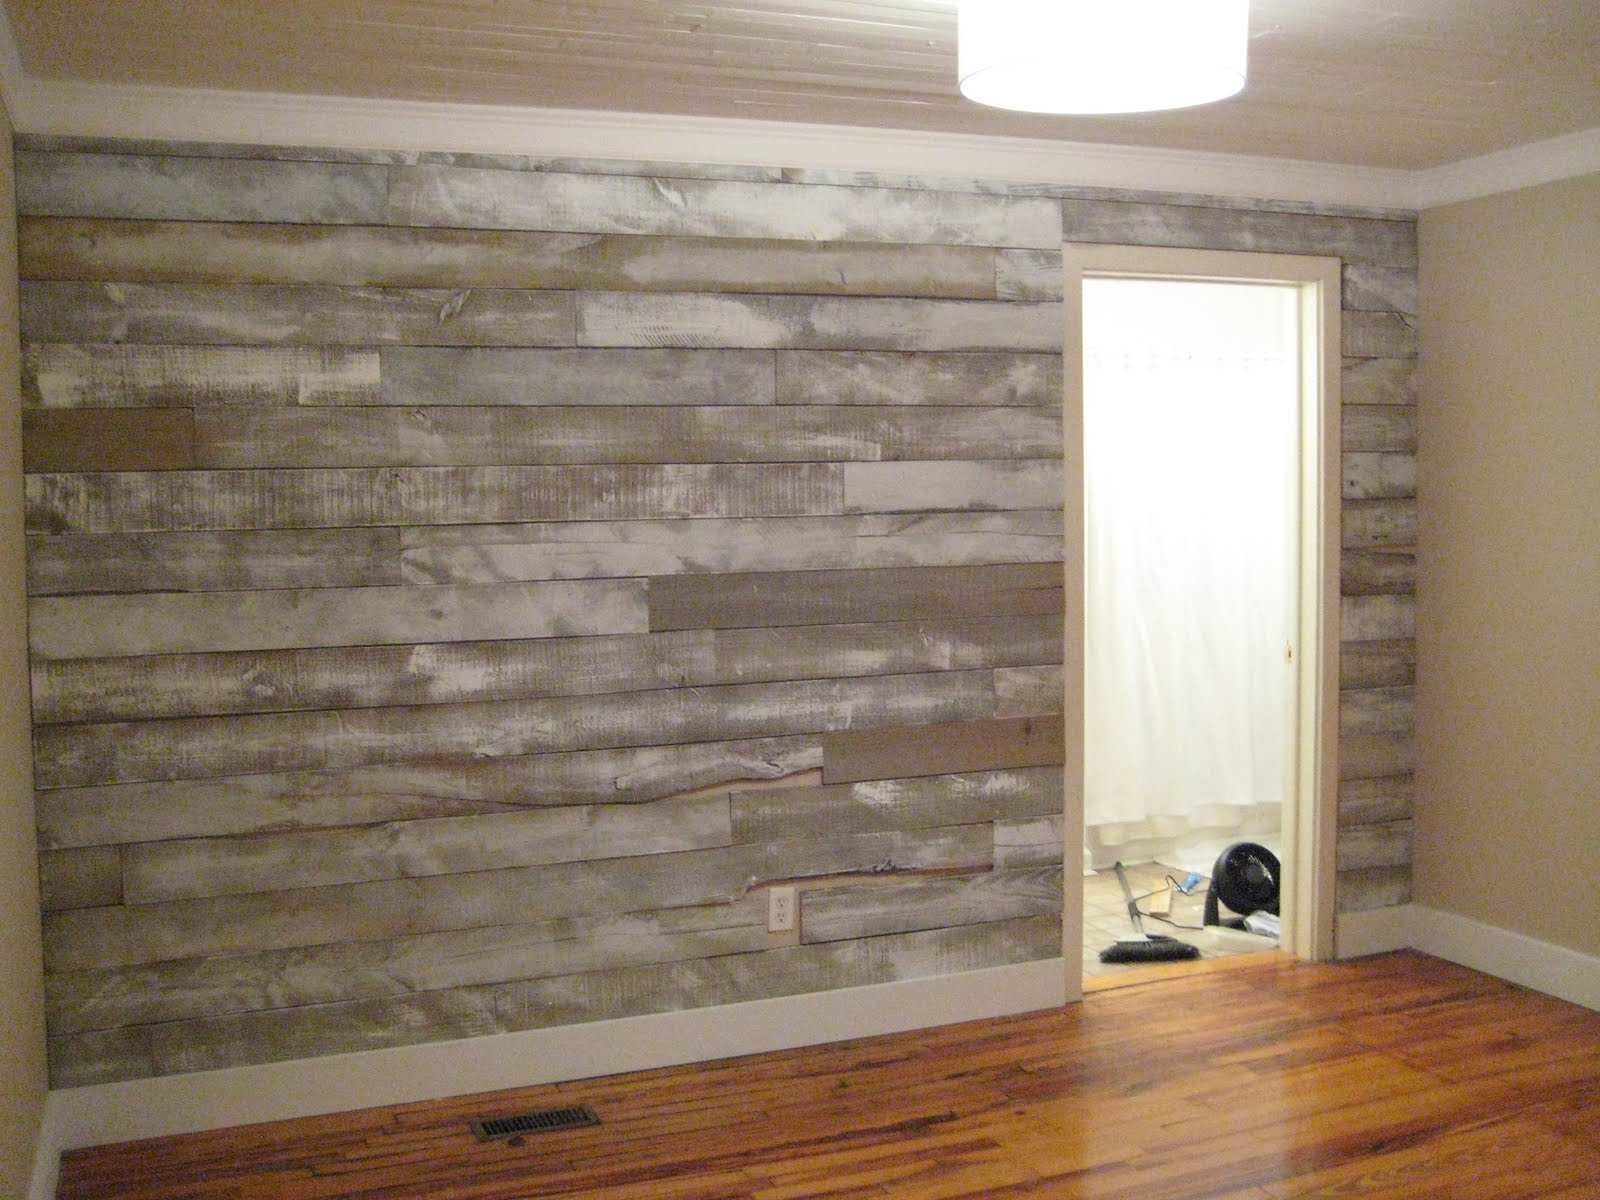 Wood wall covering ideas homesfeed How to cover old wood paneling